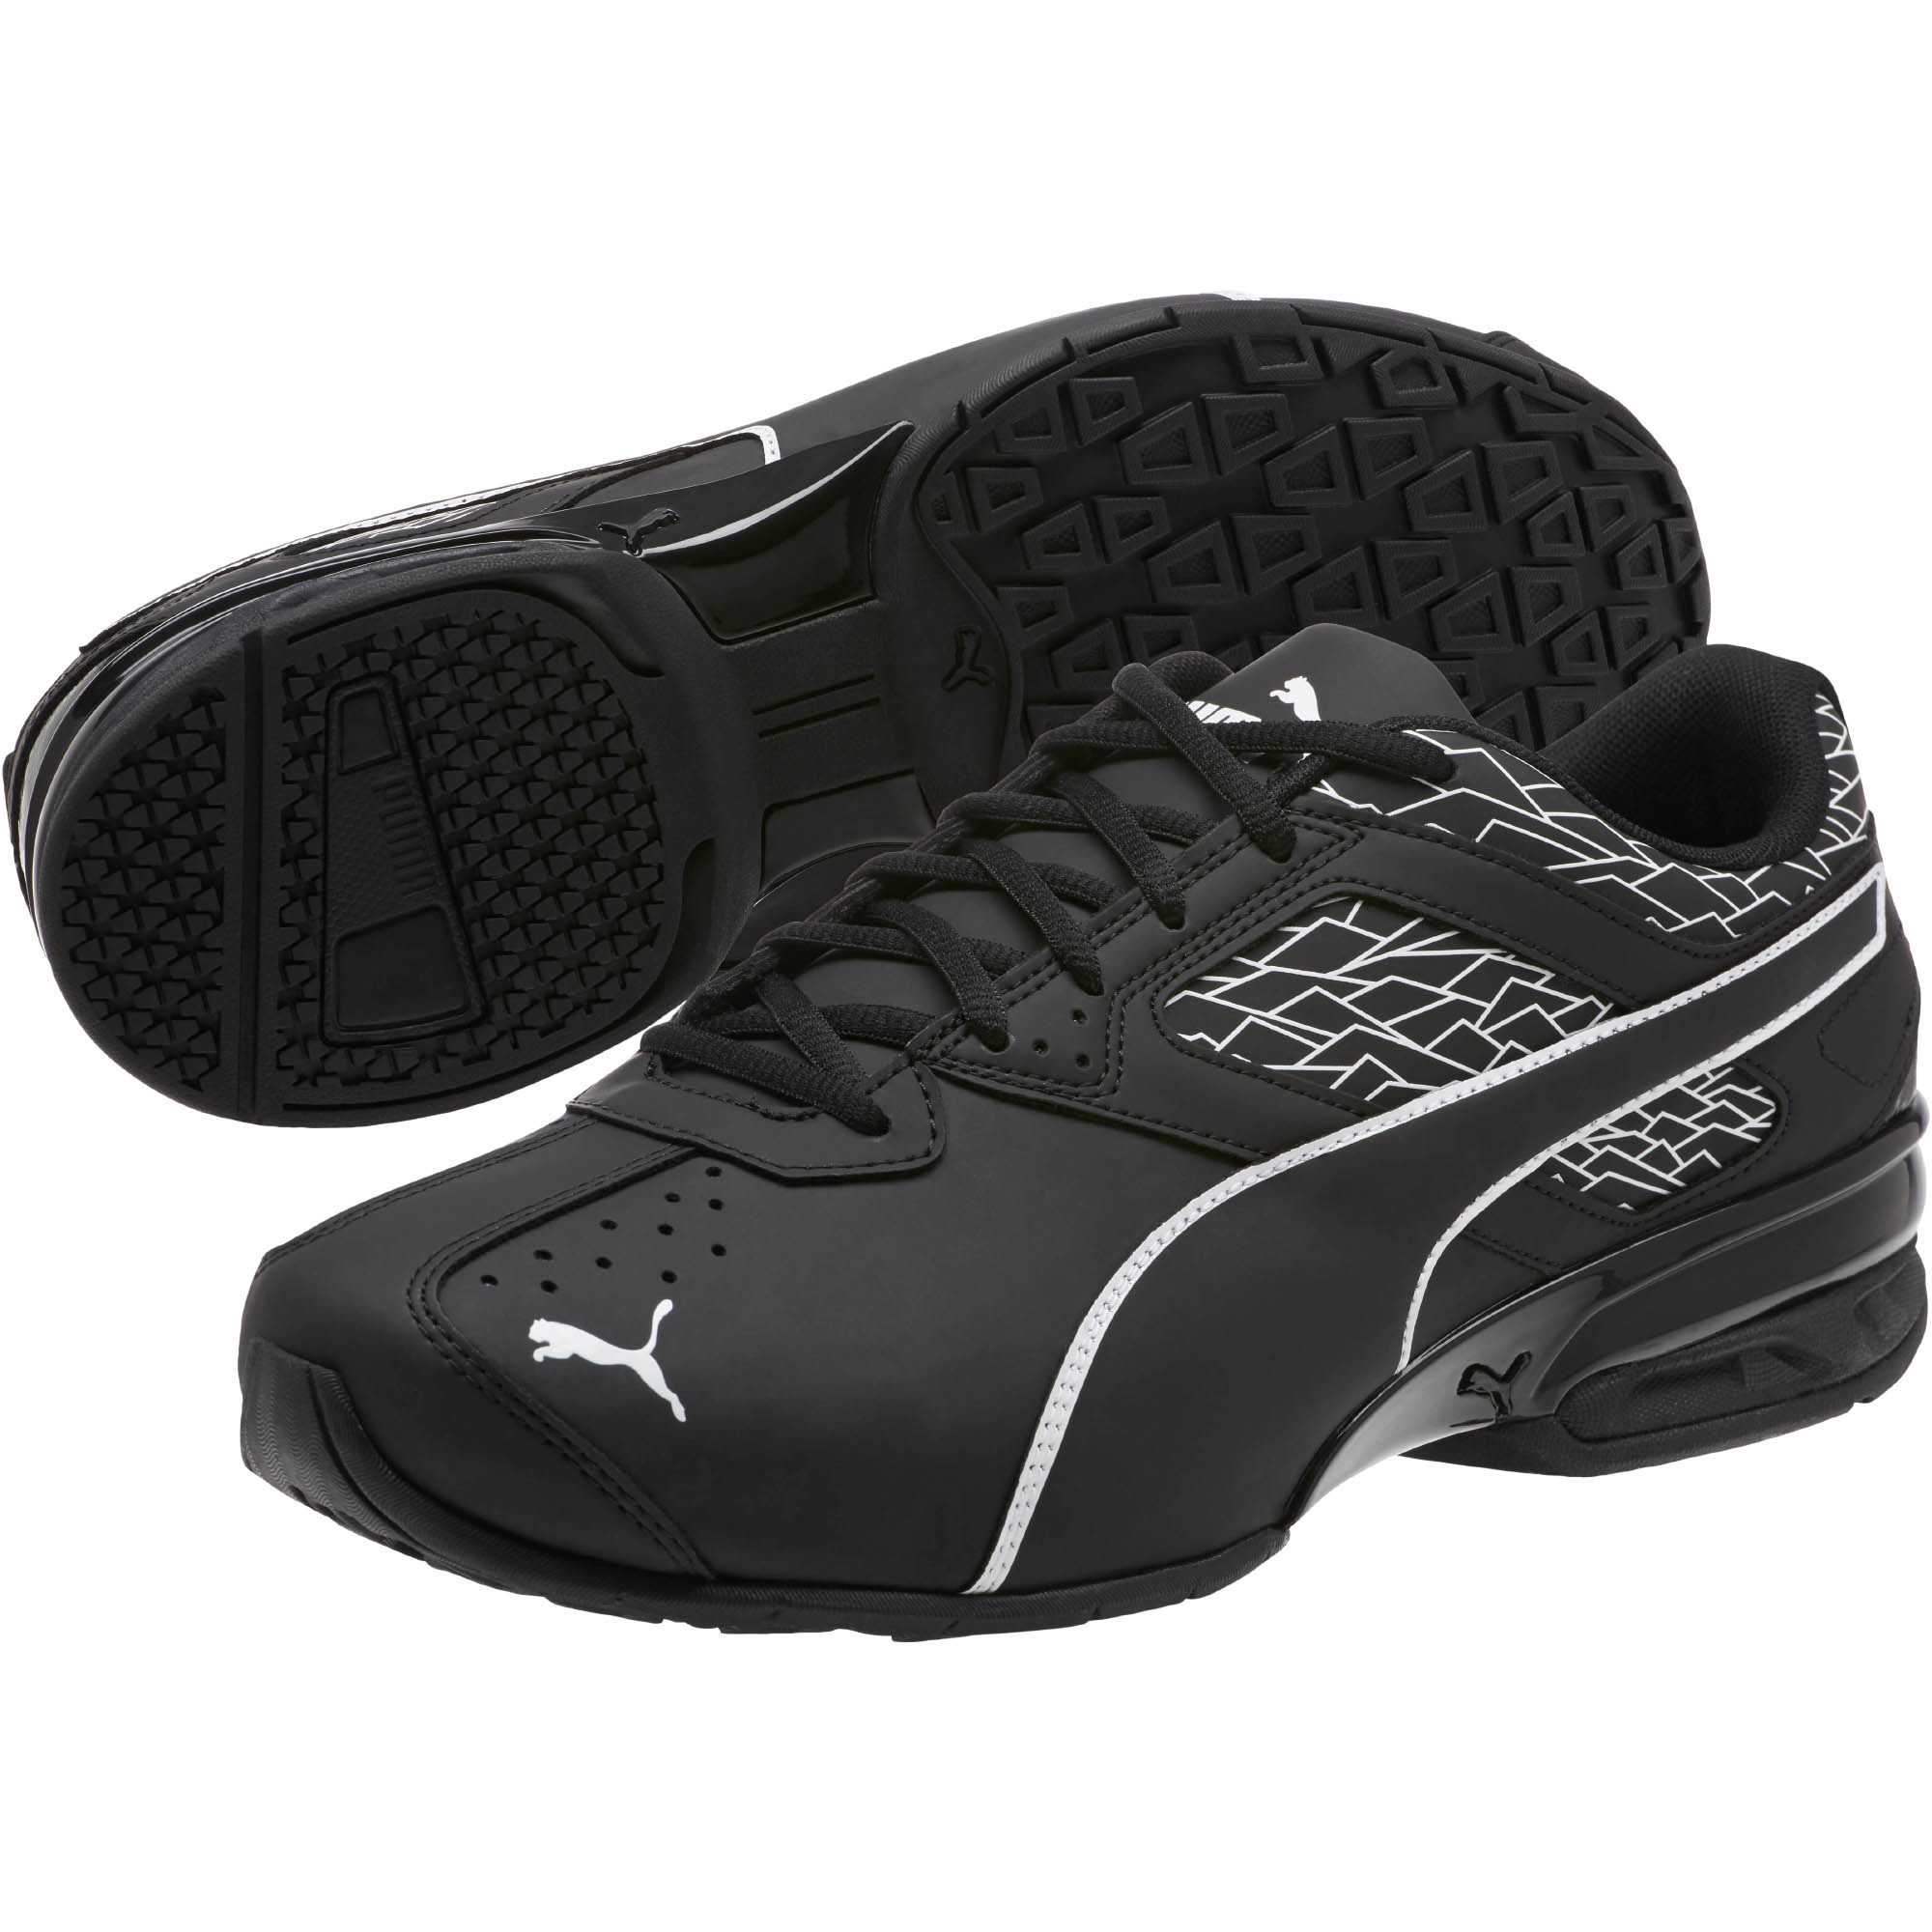 Details about PUMA Tazon 6 Fracture FM Wide Men's Sneakers Men Shoe Running